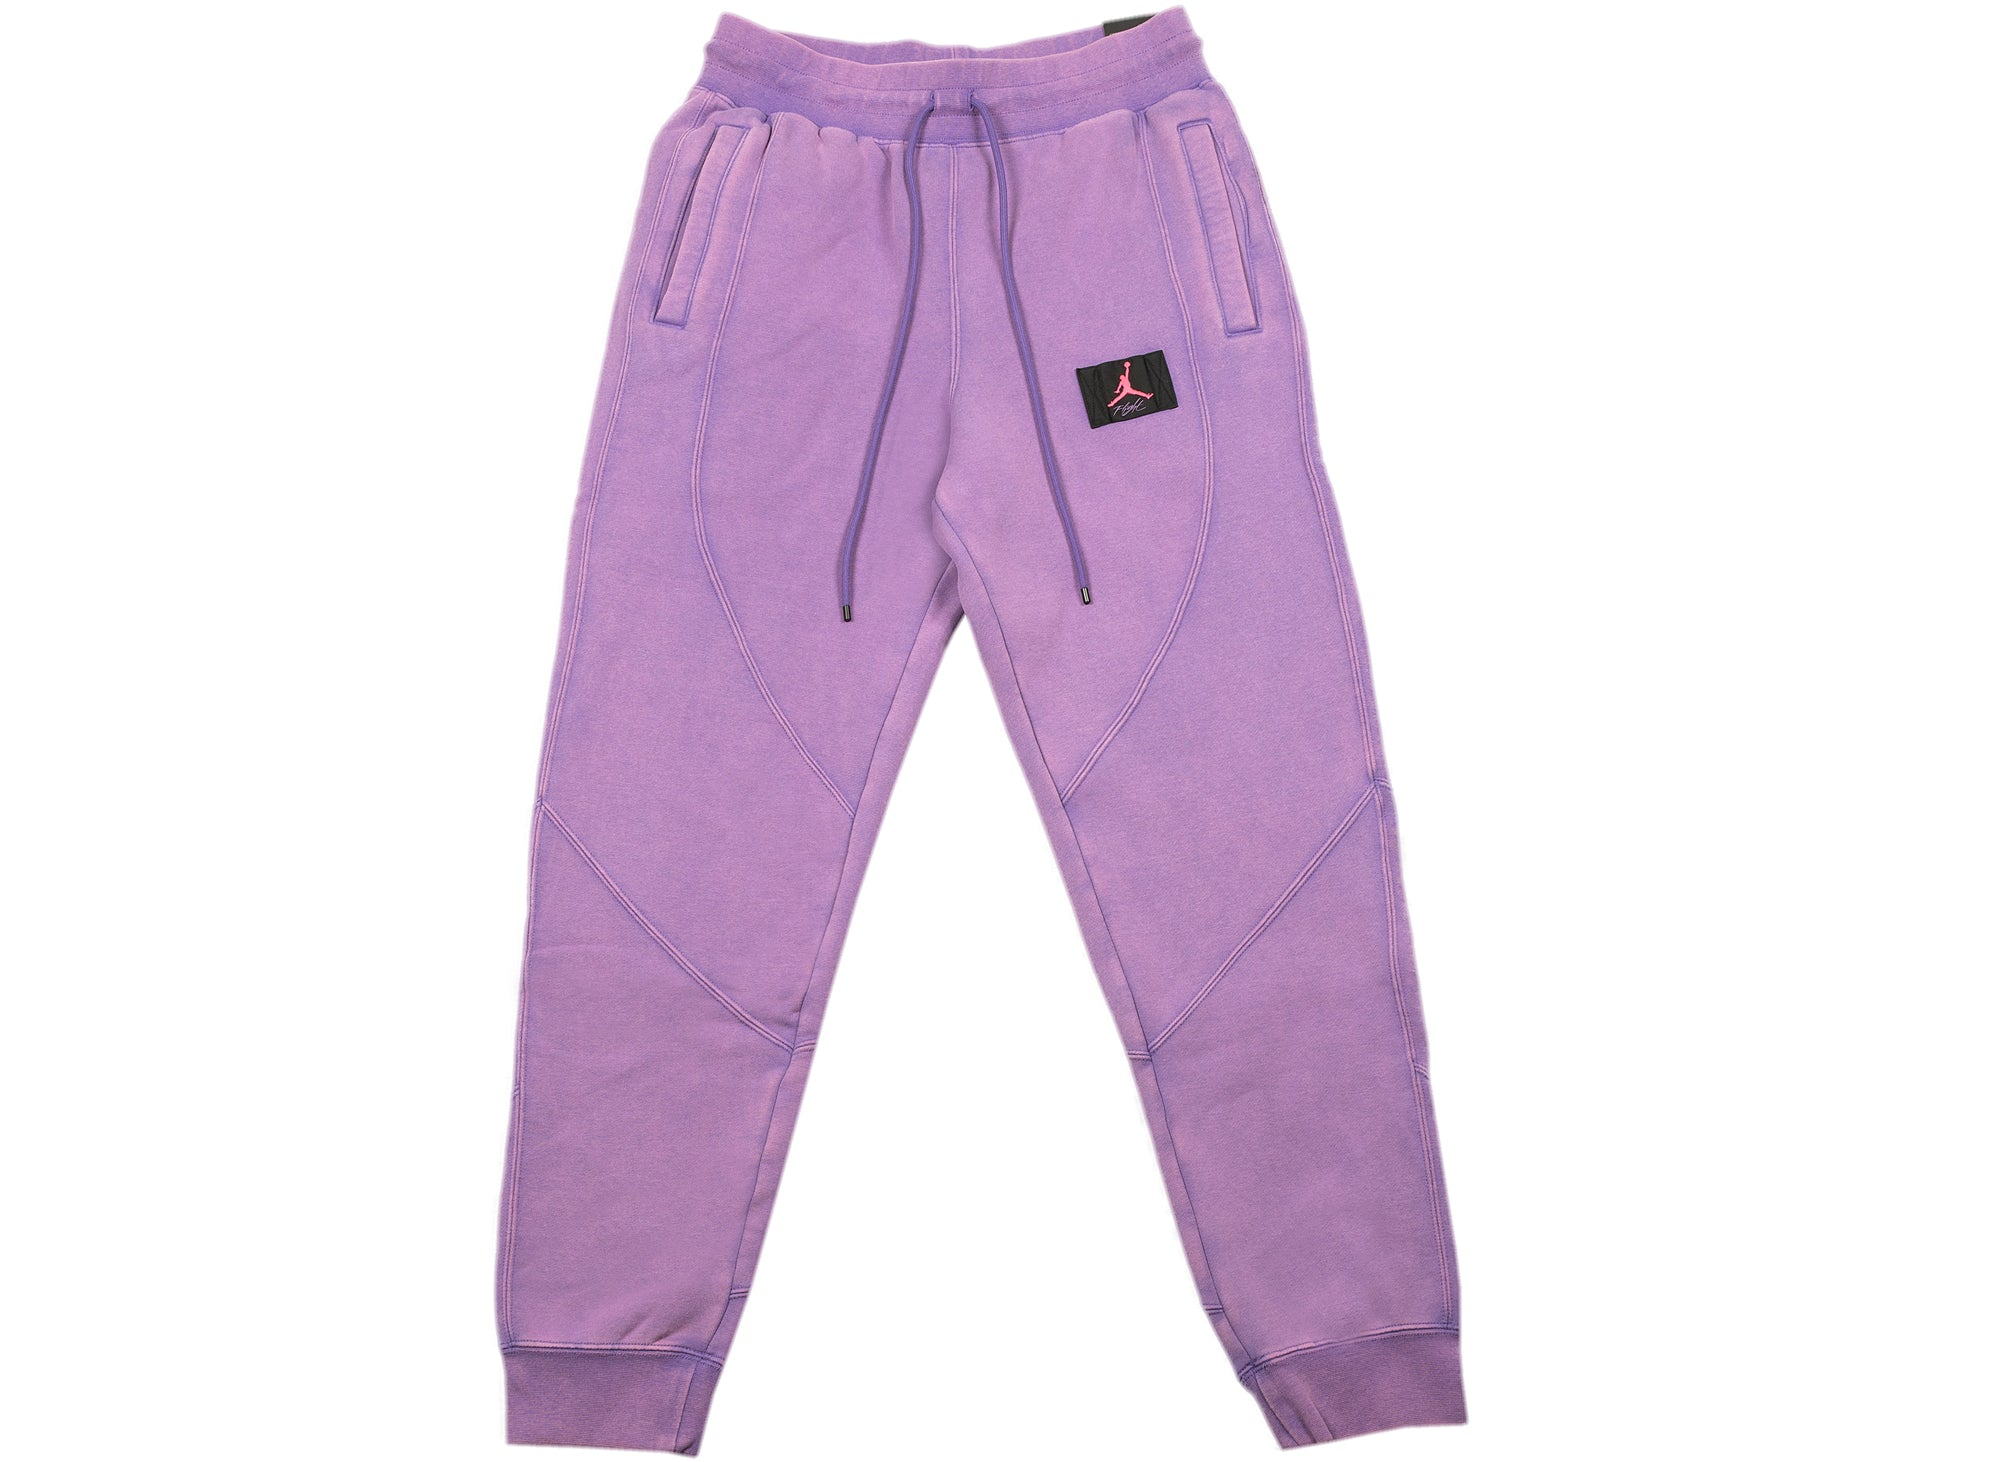 Women's Jordan Flight Fleece Trousers in Violet xld